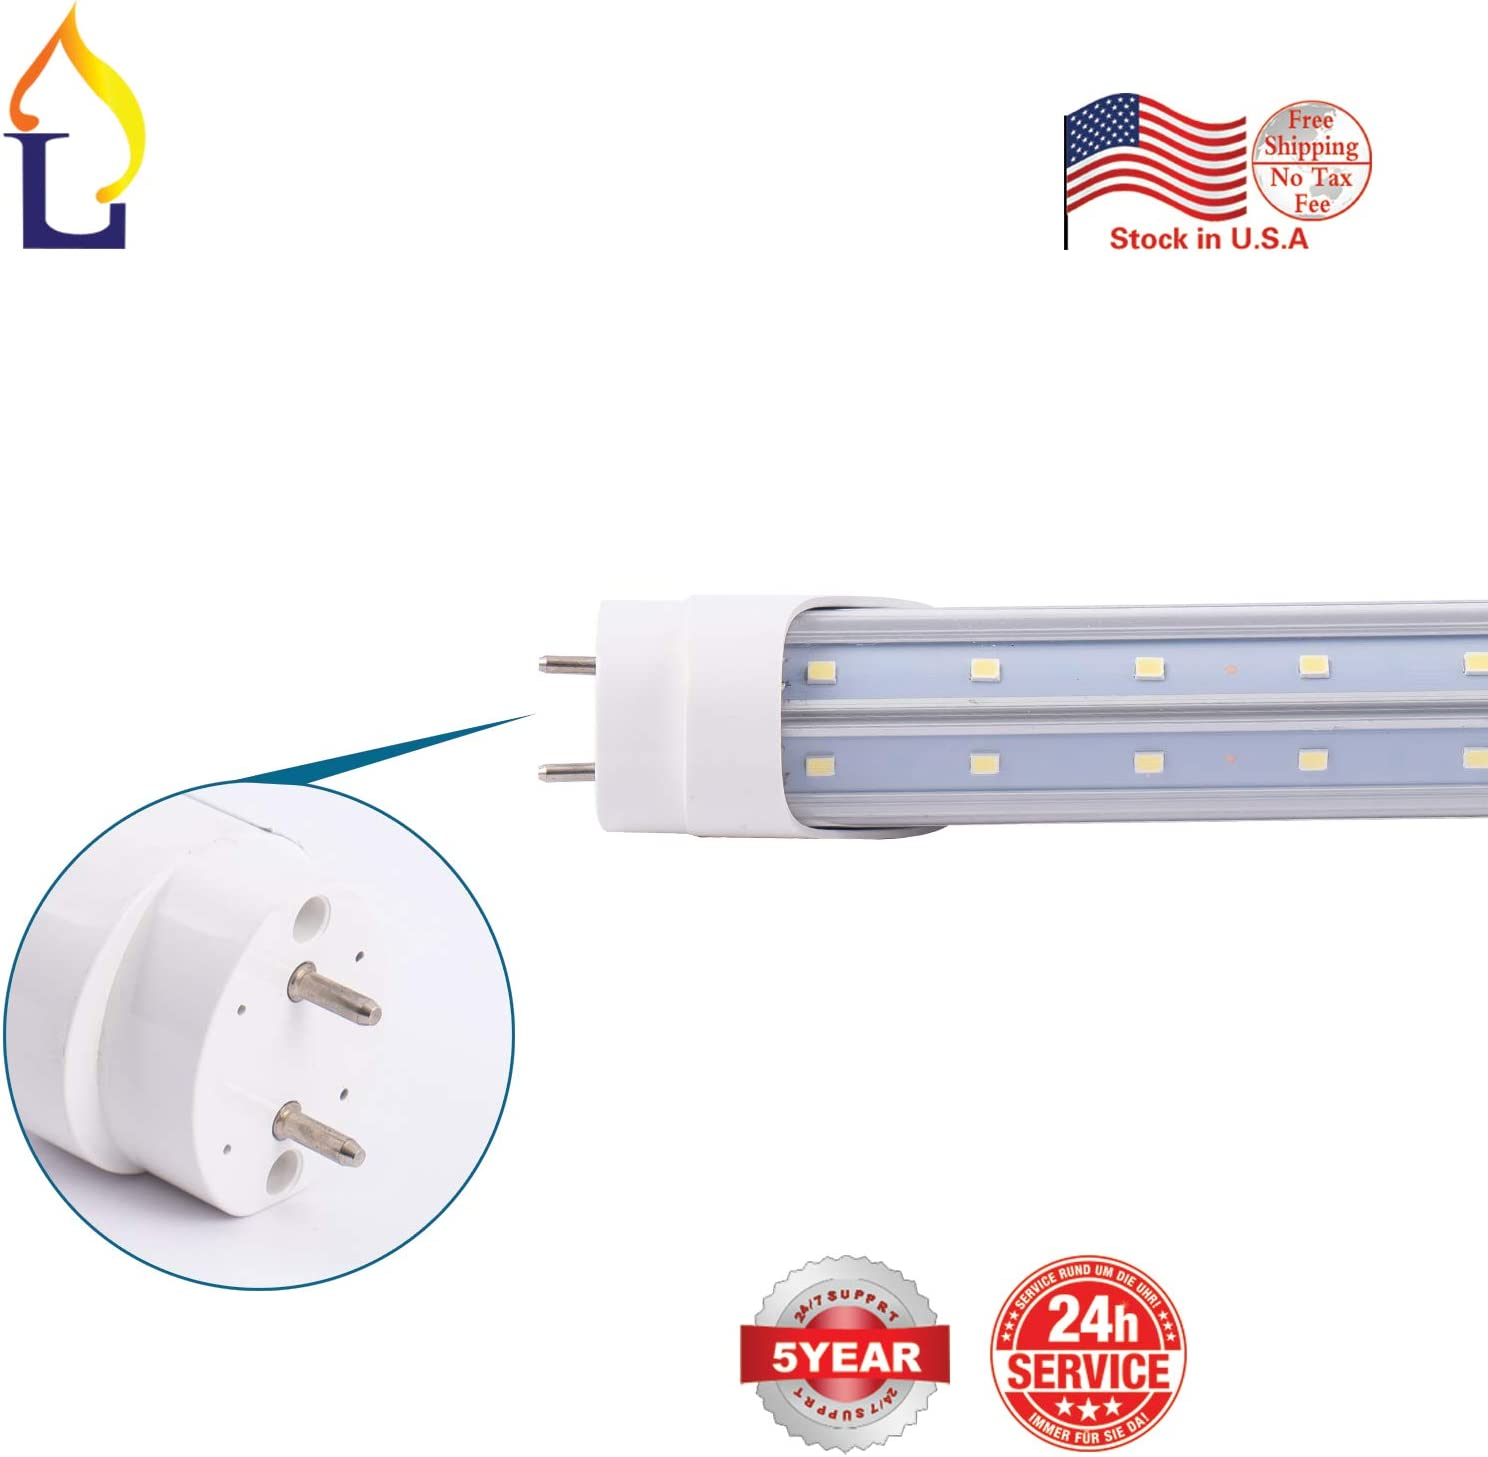 10 Pack JLLEAD Led T8 V Shaped 8FT 48W Tube Light with G13 Base ETL Listed Ballast Bypass Indoor 8 Foot Beer Cooler Lamp White 6000k Double End Powered Input Fluorescent Lighting F60T10 Replacement